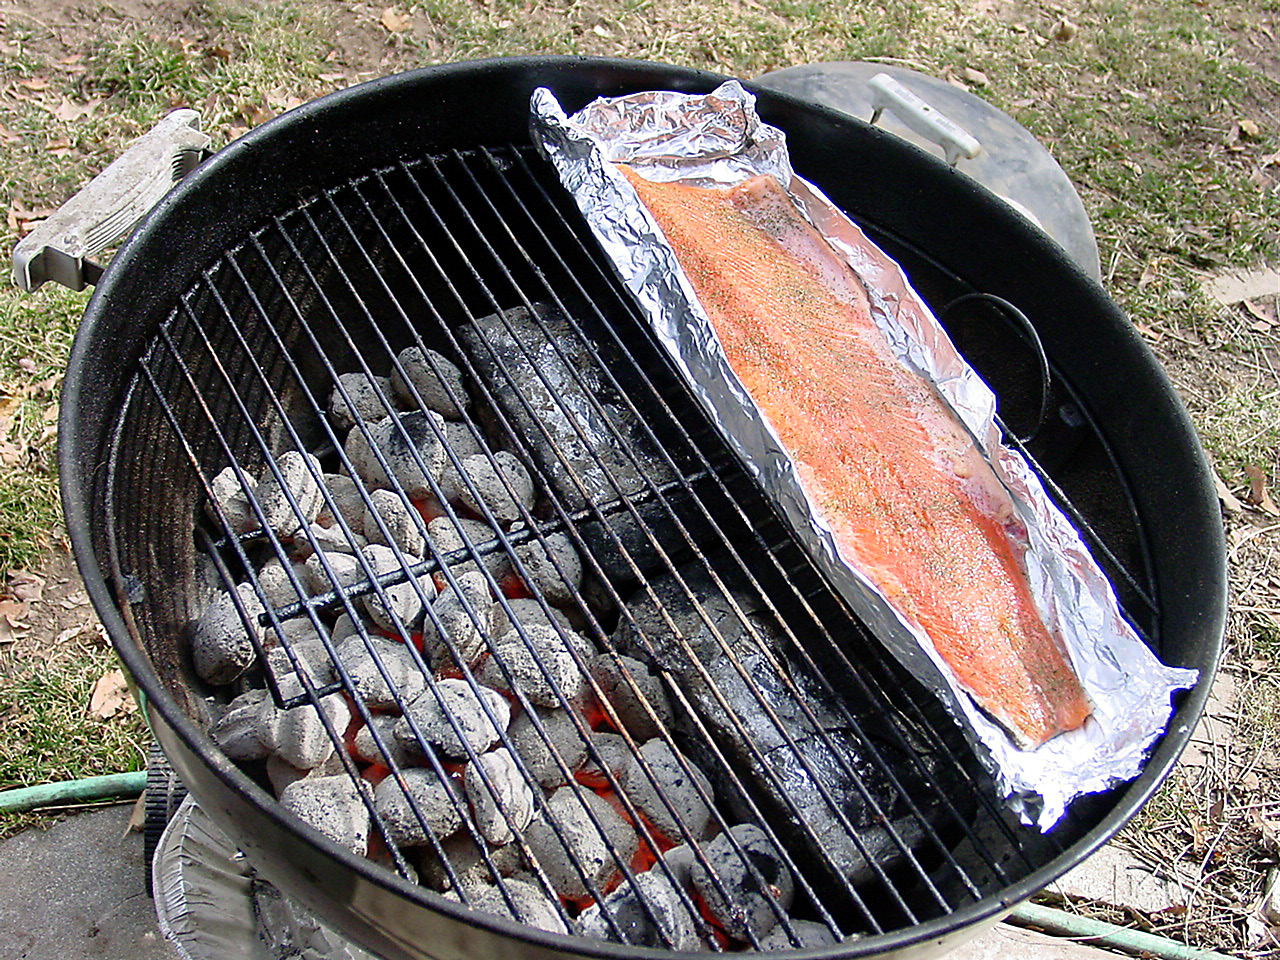 The Real Leopardstripes: Hot smoked salmon, Shioyaki style